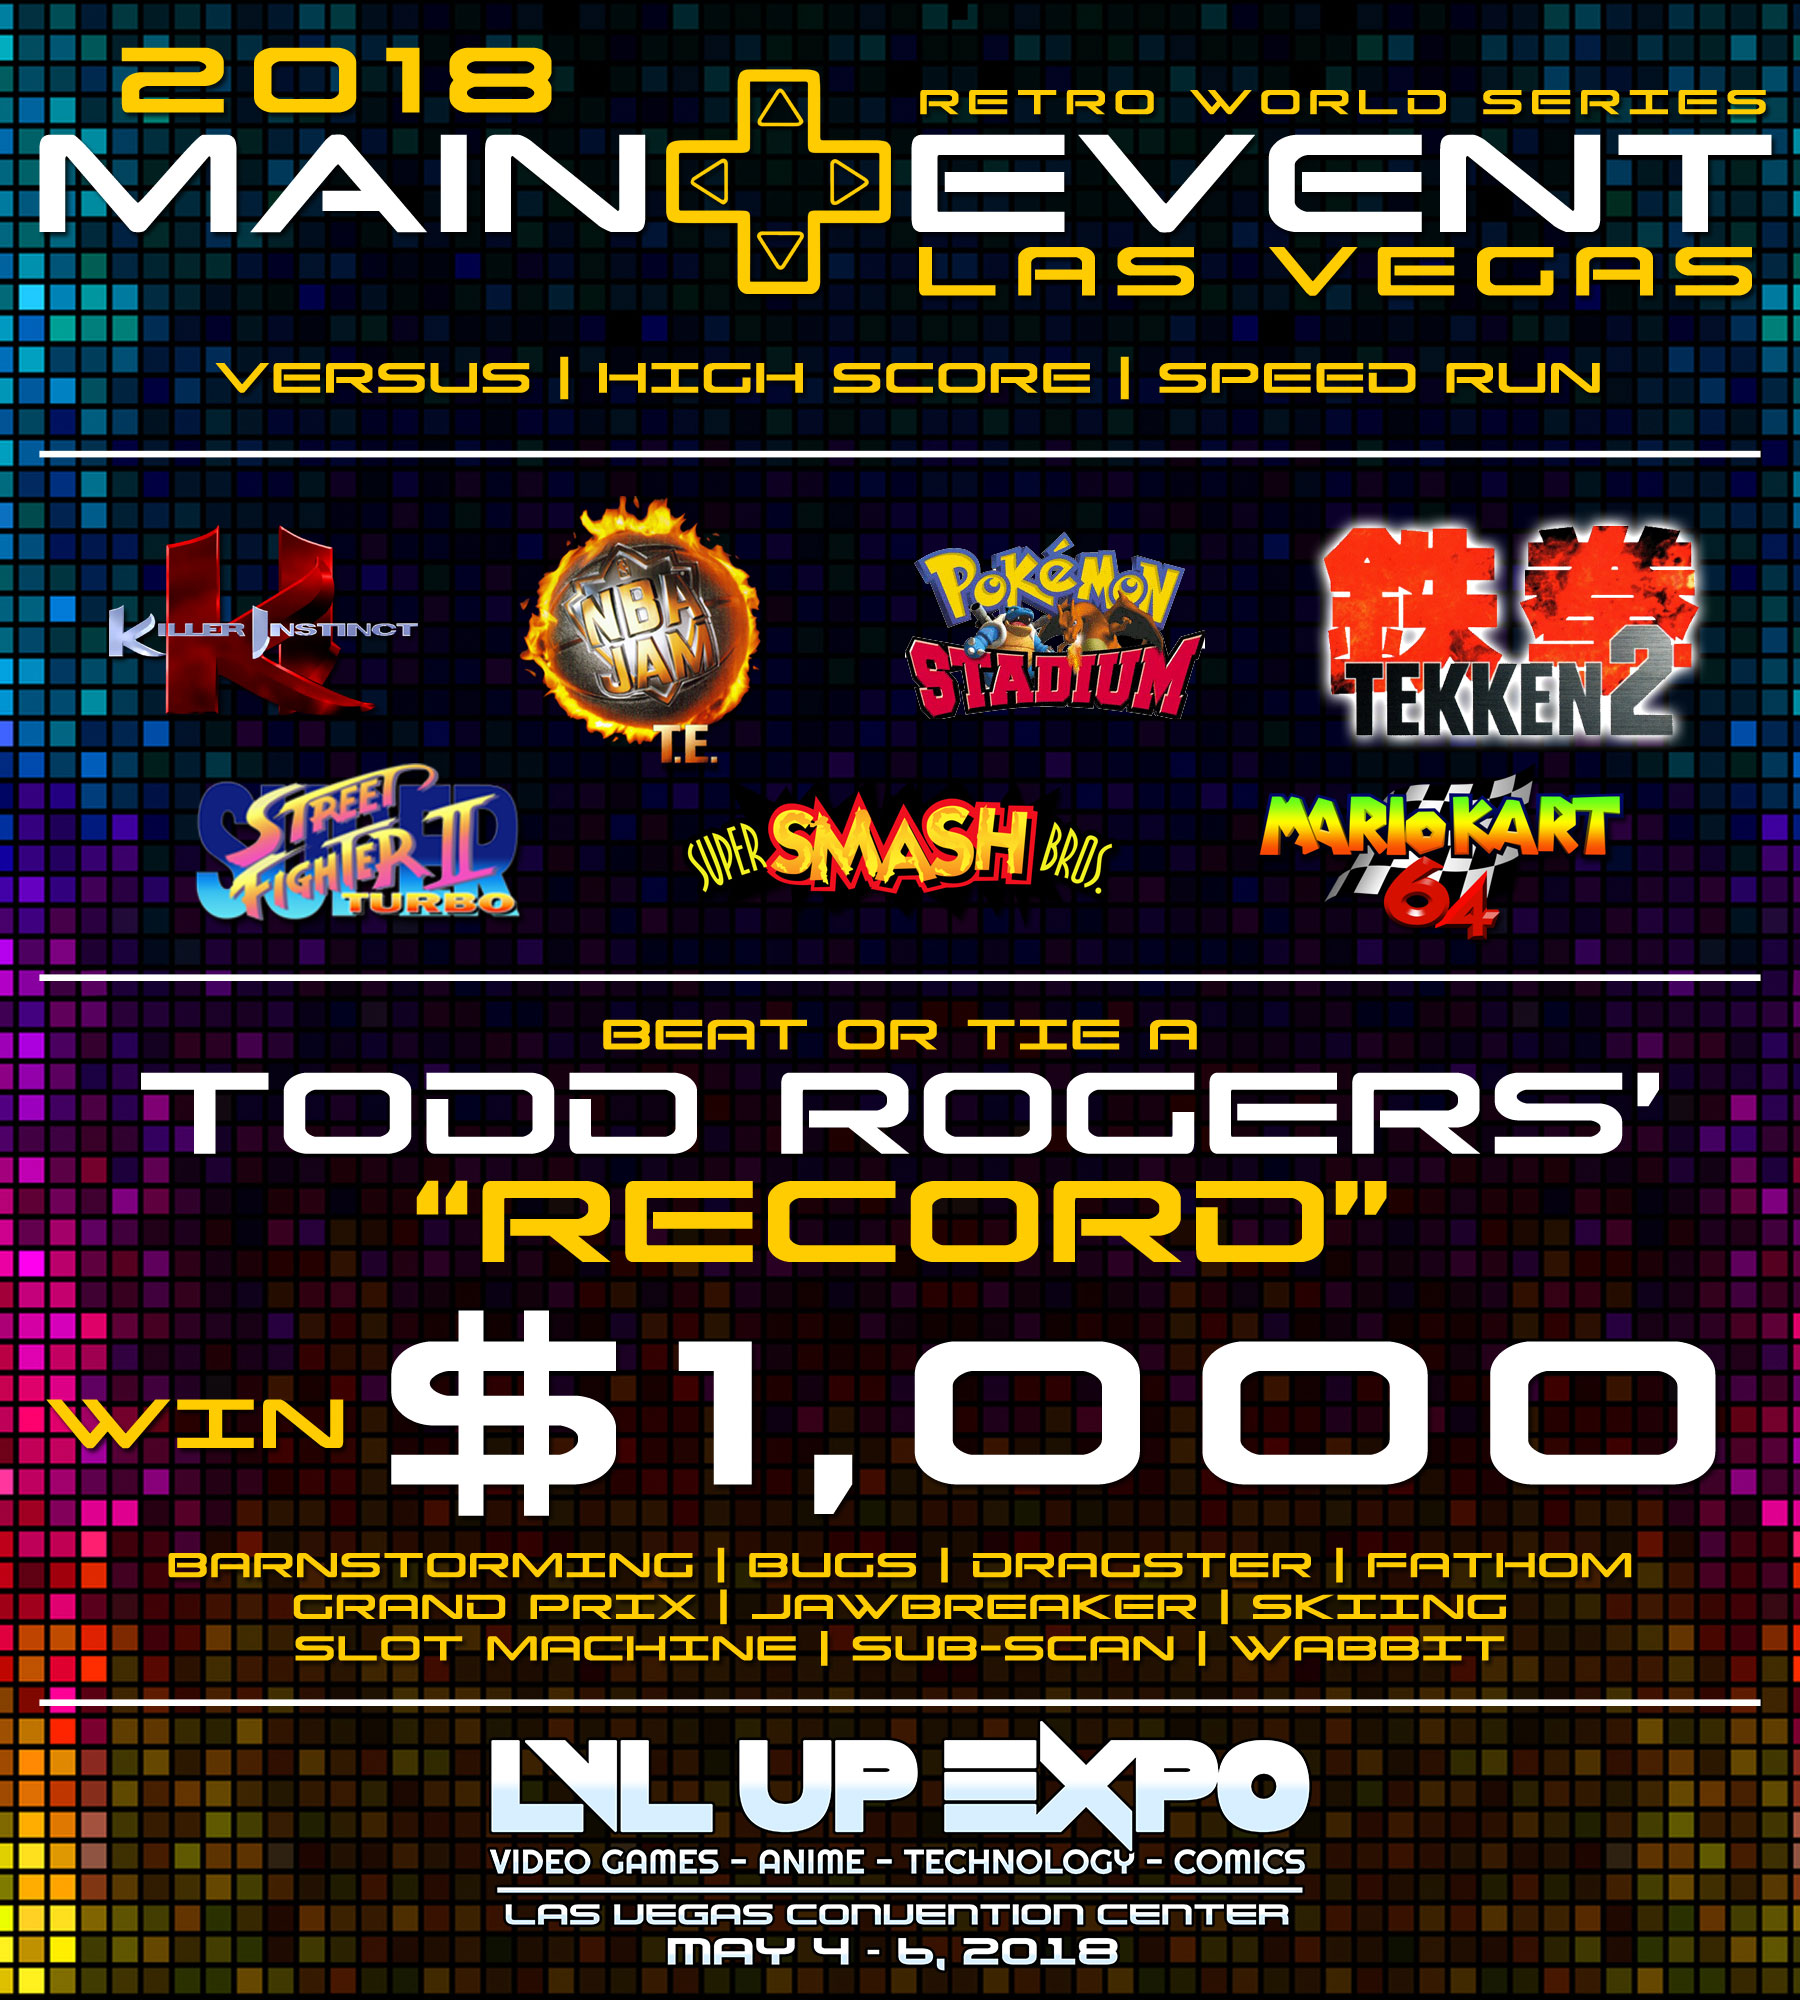 2018 Retro World Series Main Event @ LVL Up Expo in Las Vegas - Events - AtariAge Forums